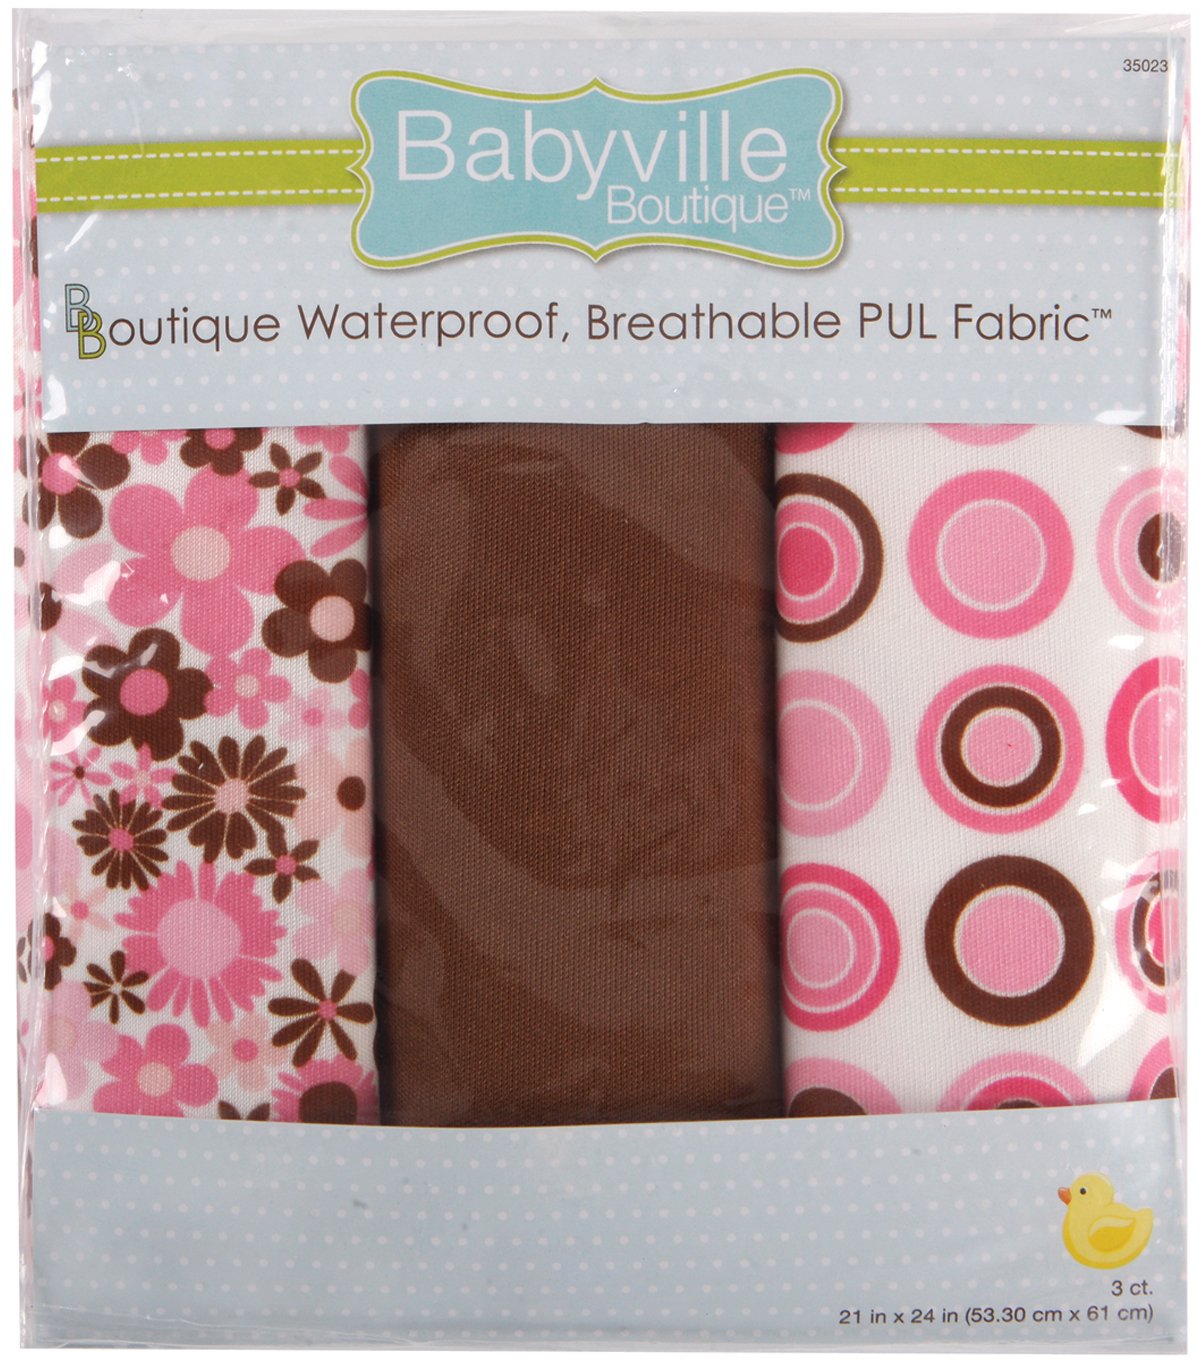 Babyville Mod Girl Waterproof Diaper Fabric Flowers & Dots